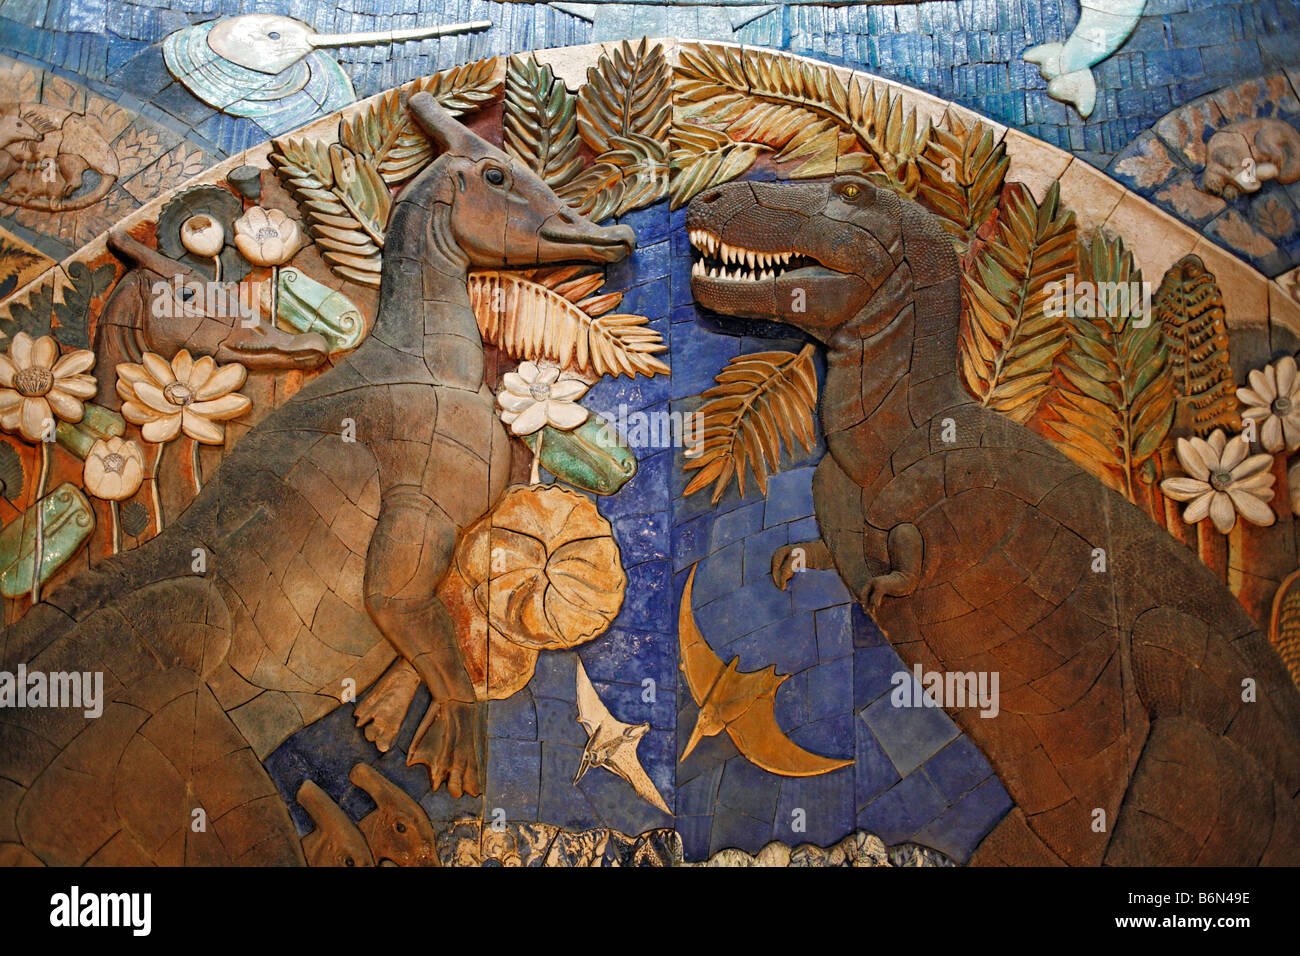 Dinosaurs, Palaeontology museum, Moscow, Russia - Stock Image